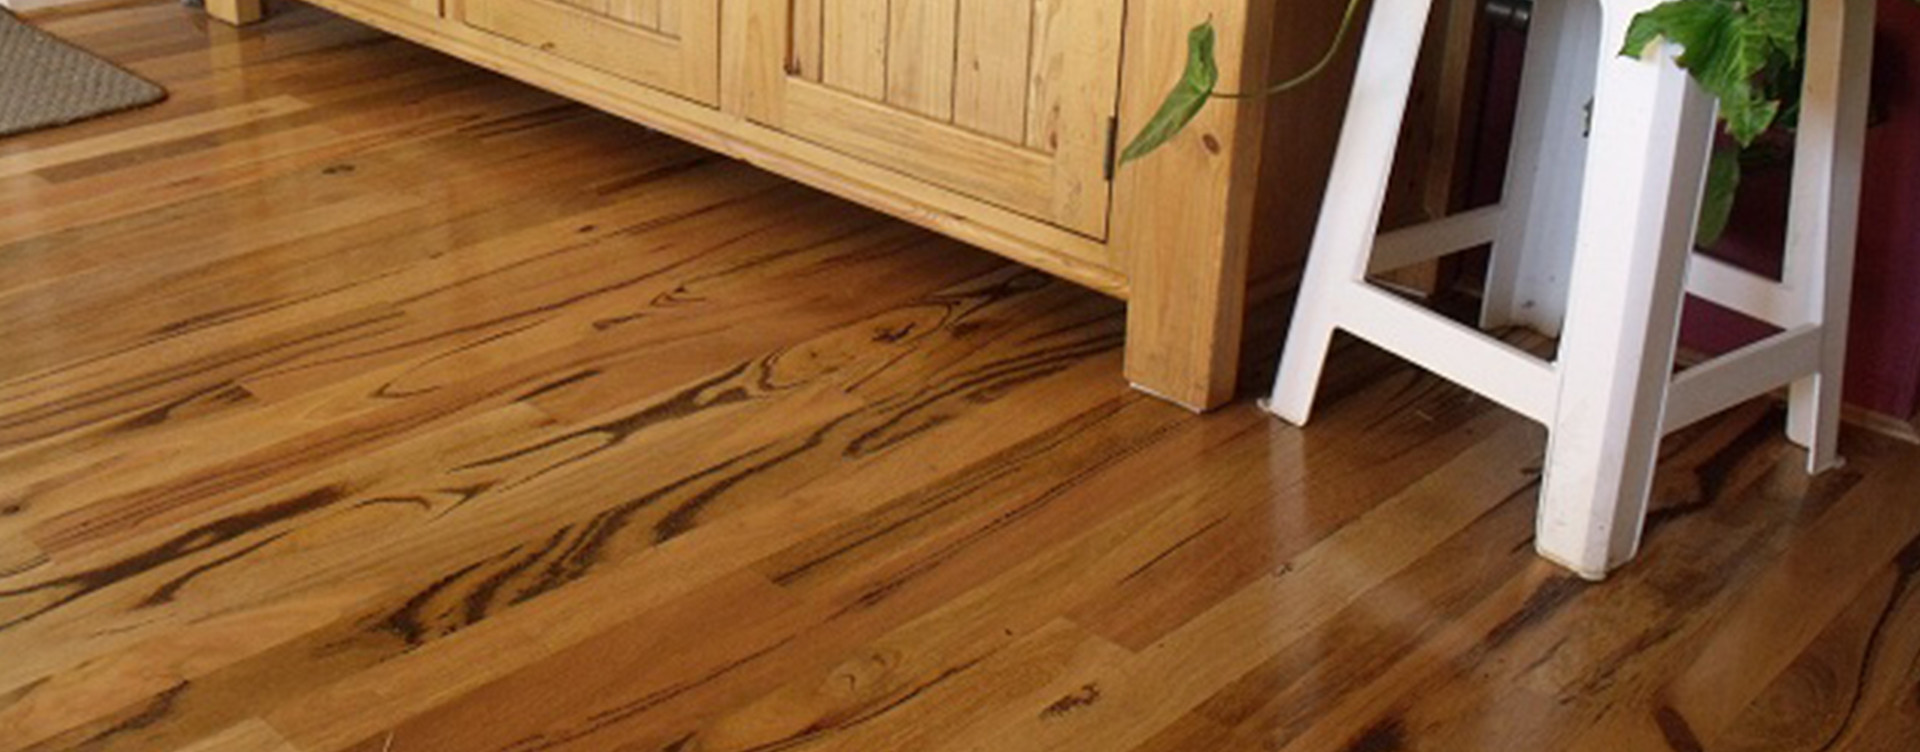 hardwood flooring products south bend of timber flooring perth coastal flooring wa quality wooden intended for view more photos